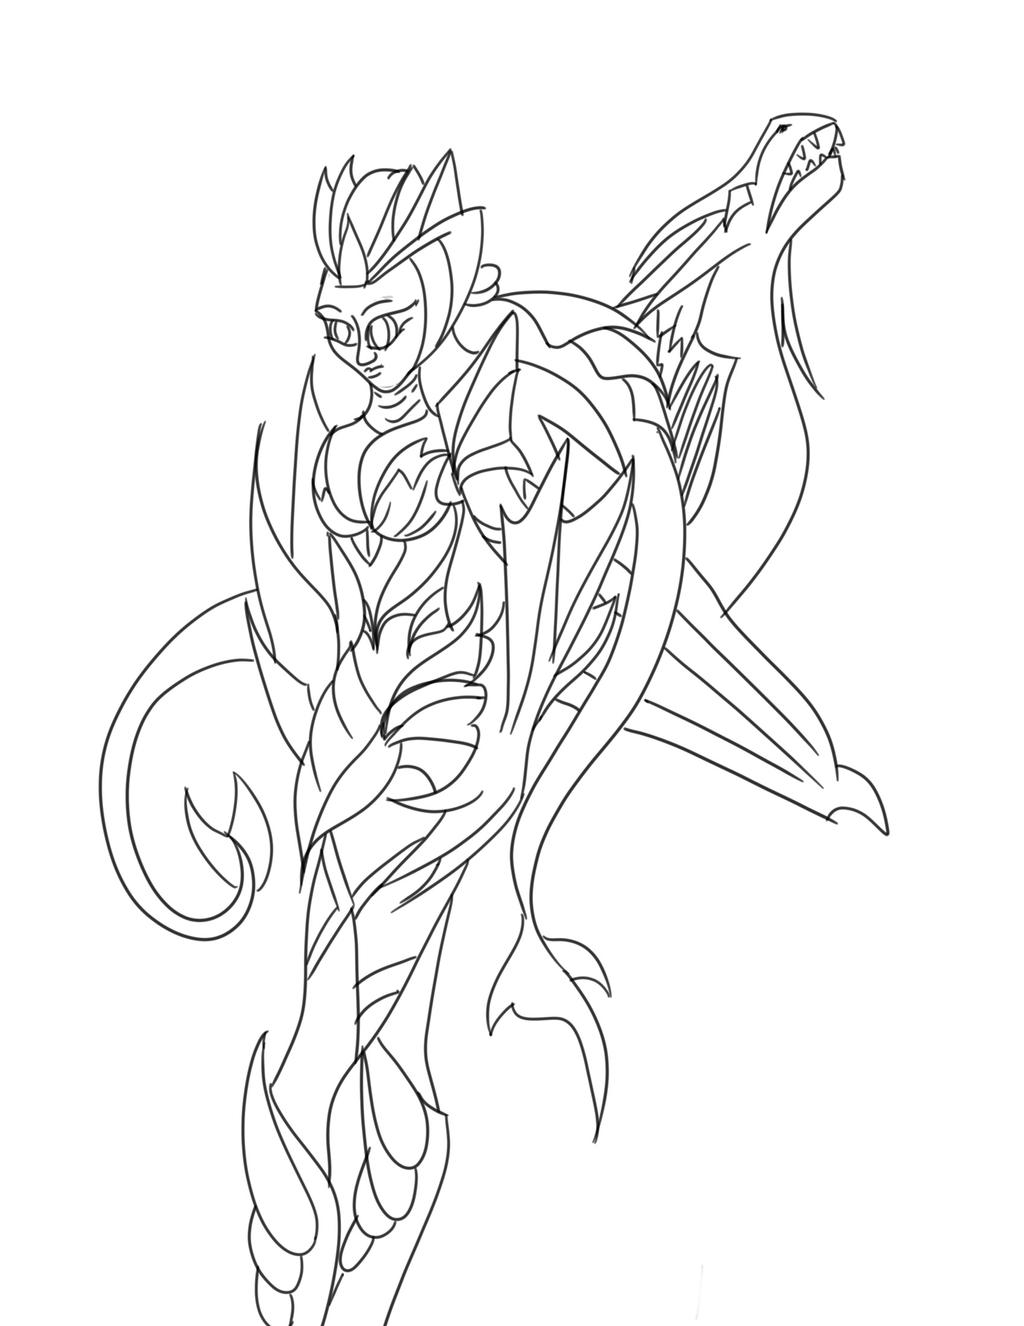 Ice Shyvana Coloring Book By Melusine Designs On DeviantArt